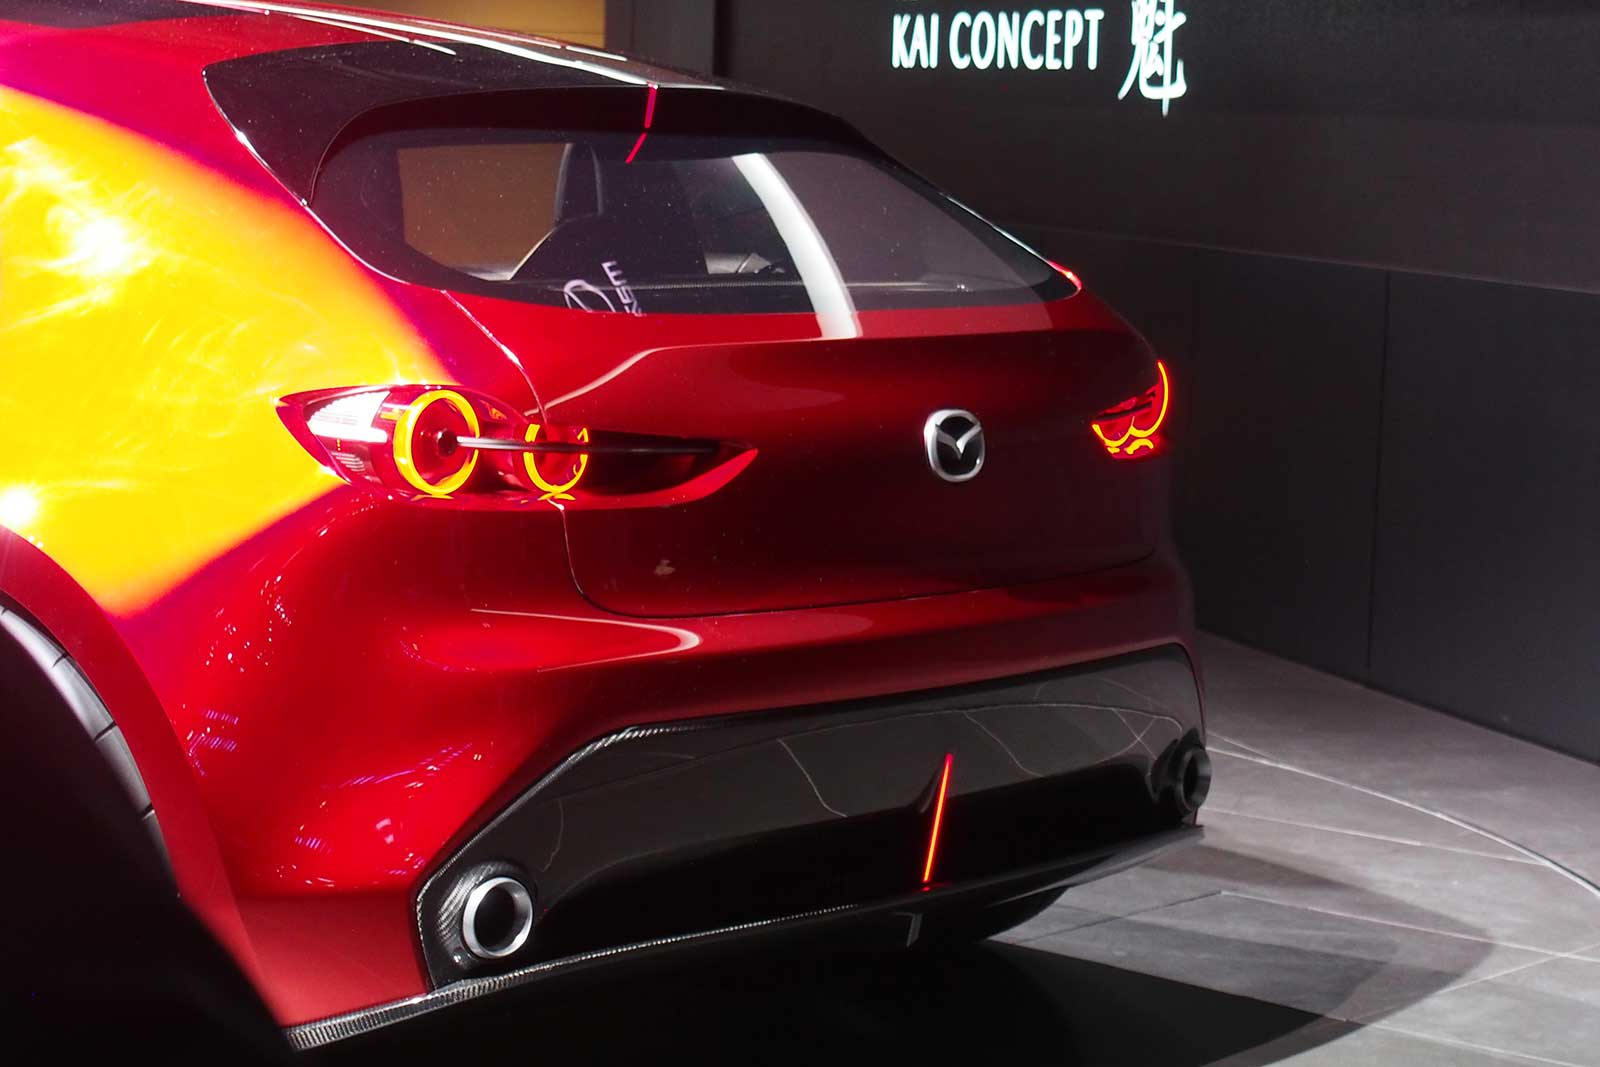 New Mazda3 To Debut This Year With Kai Concept Inspiration